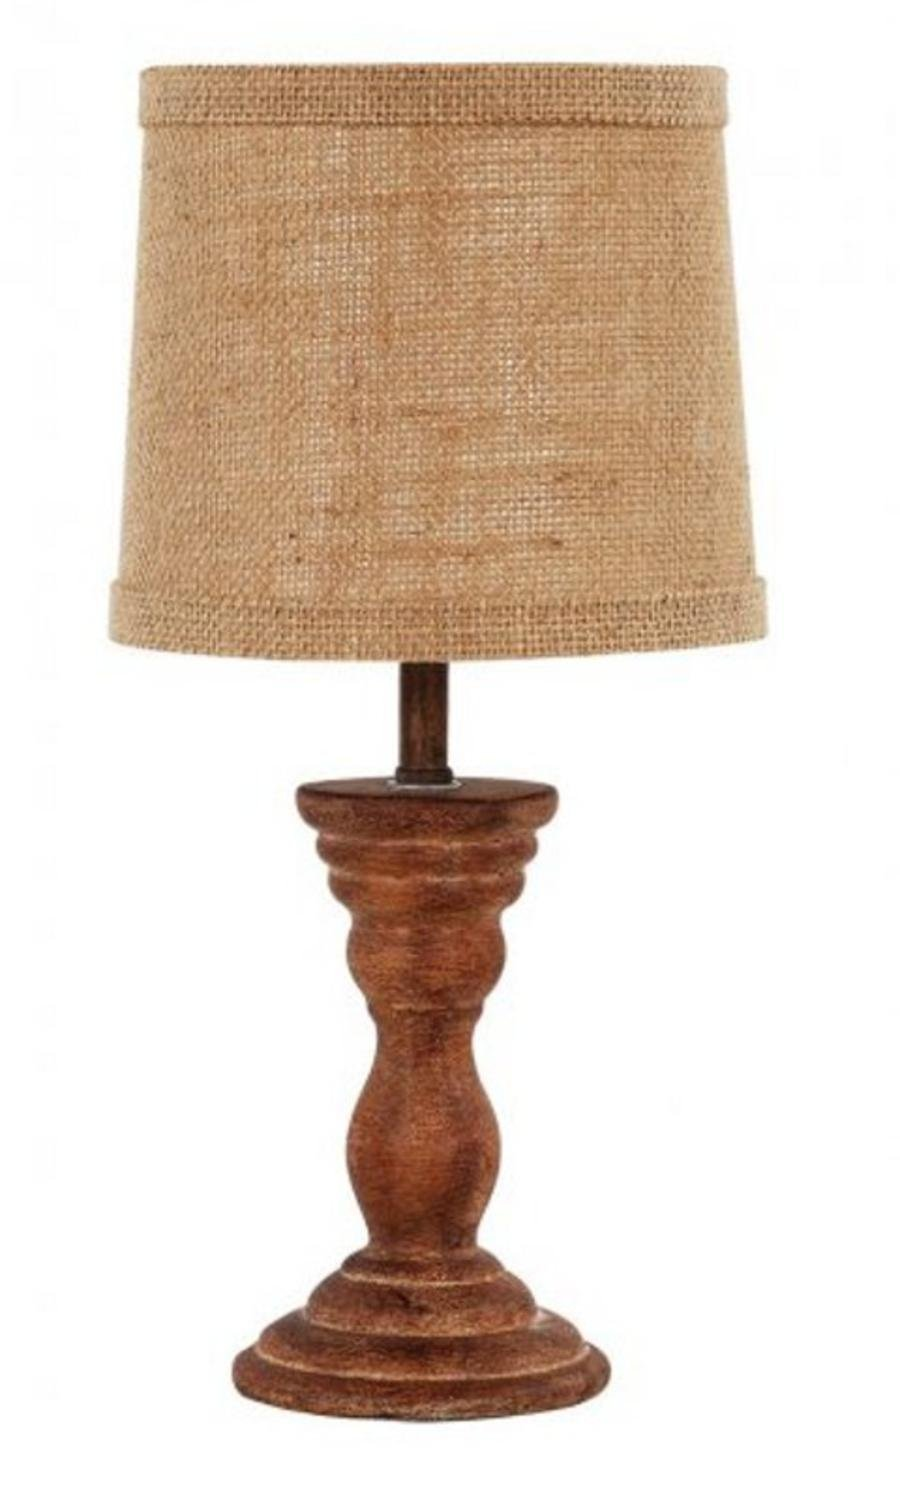 Diva At Home Set of 2 Raffaello Wood Stain Accent Lamps with Natural Burlap Fabric Shades